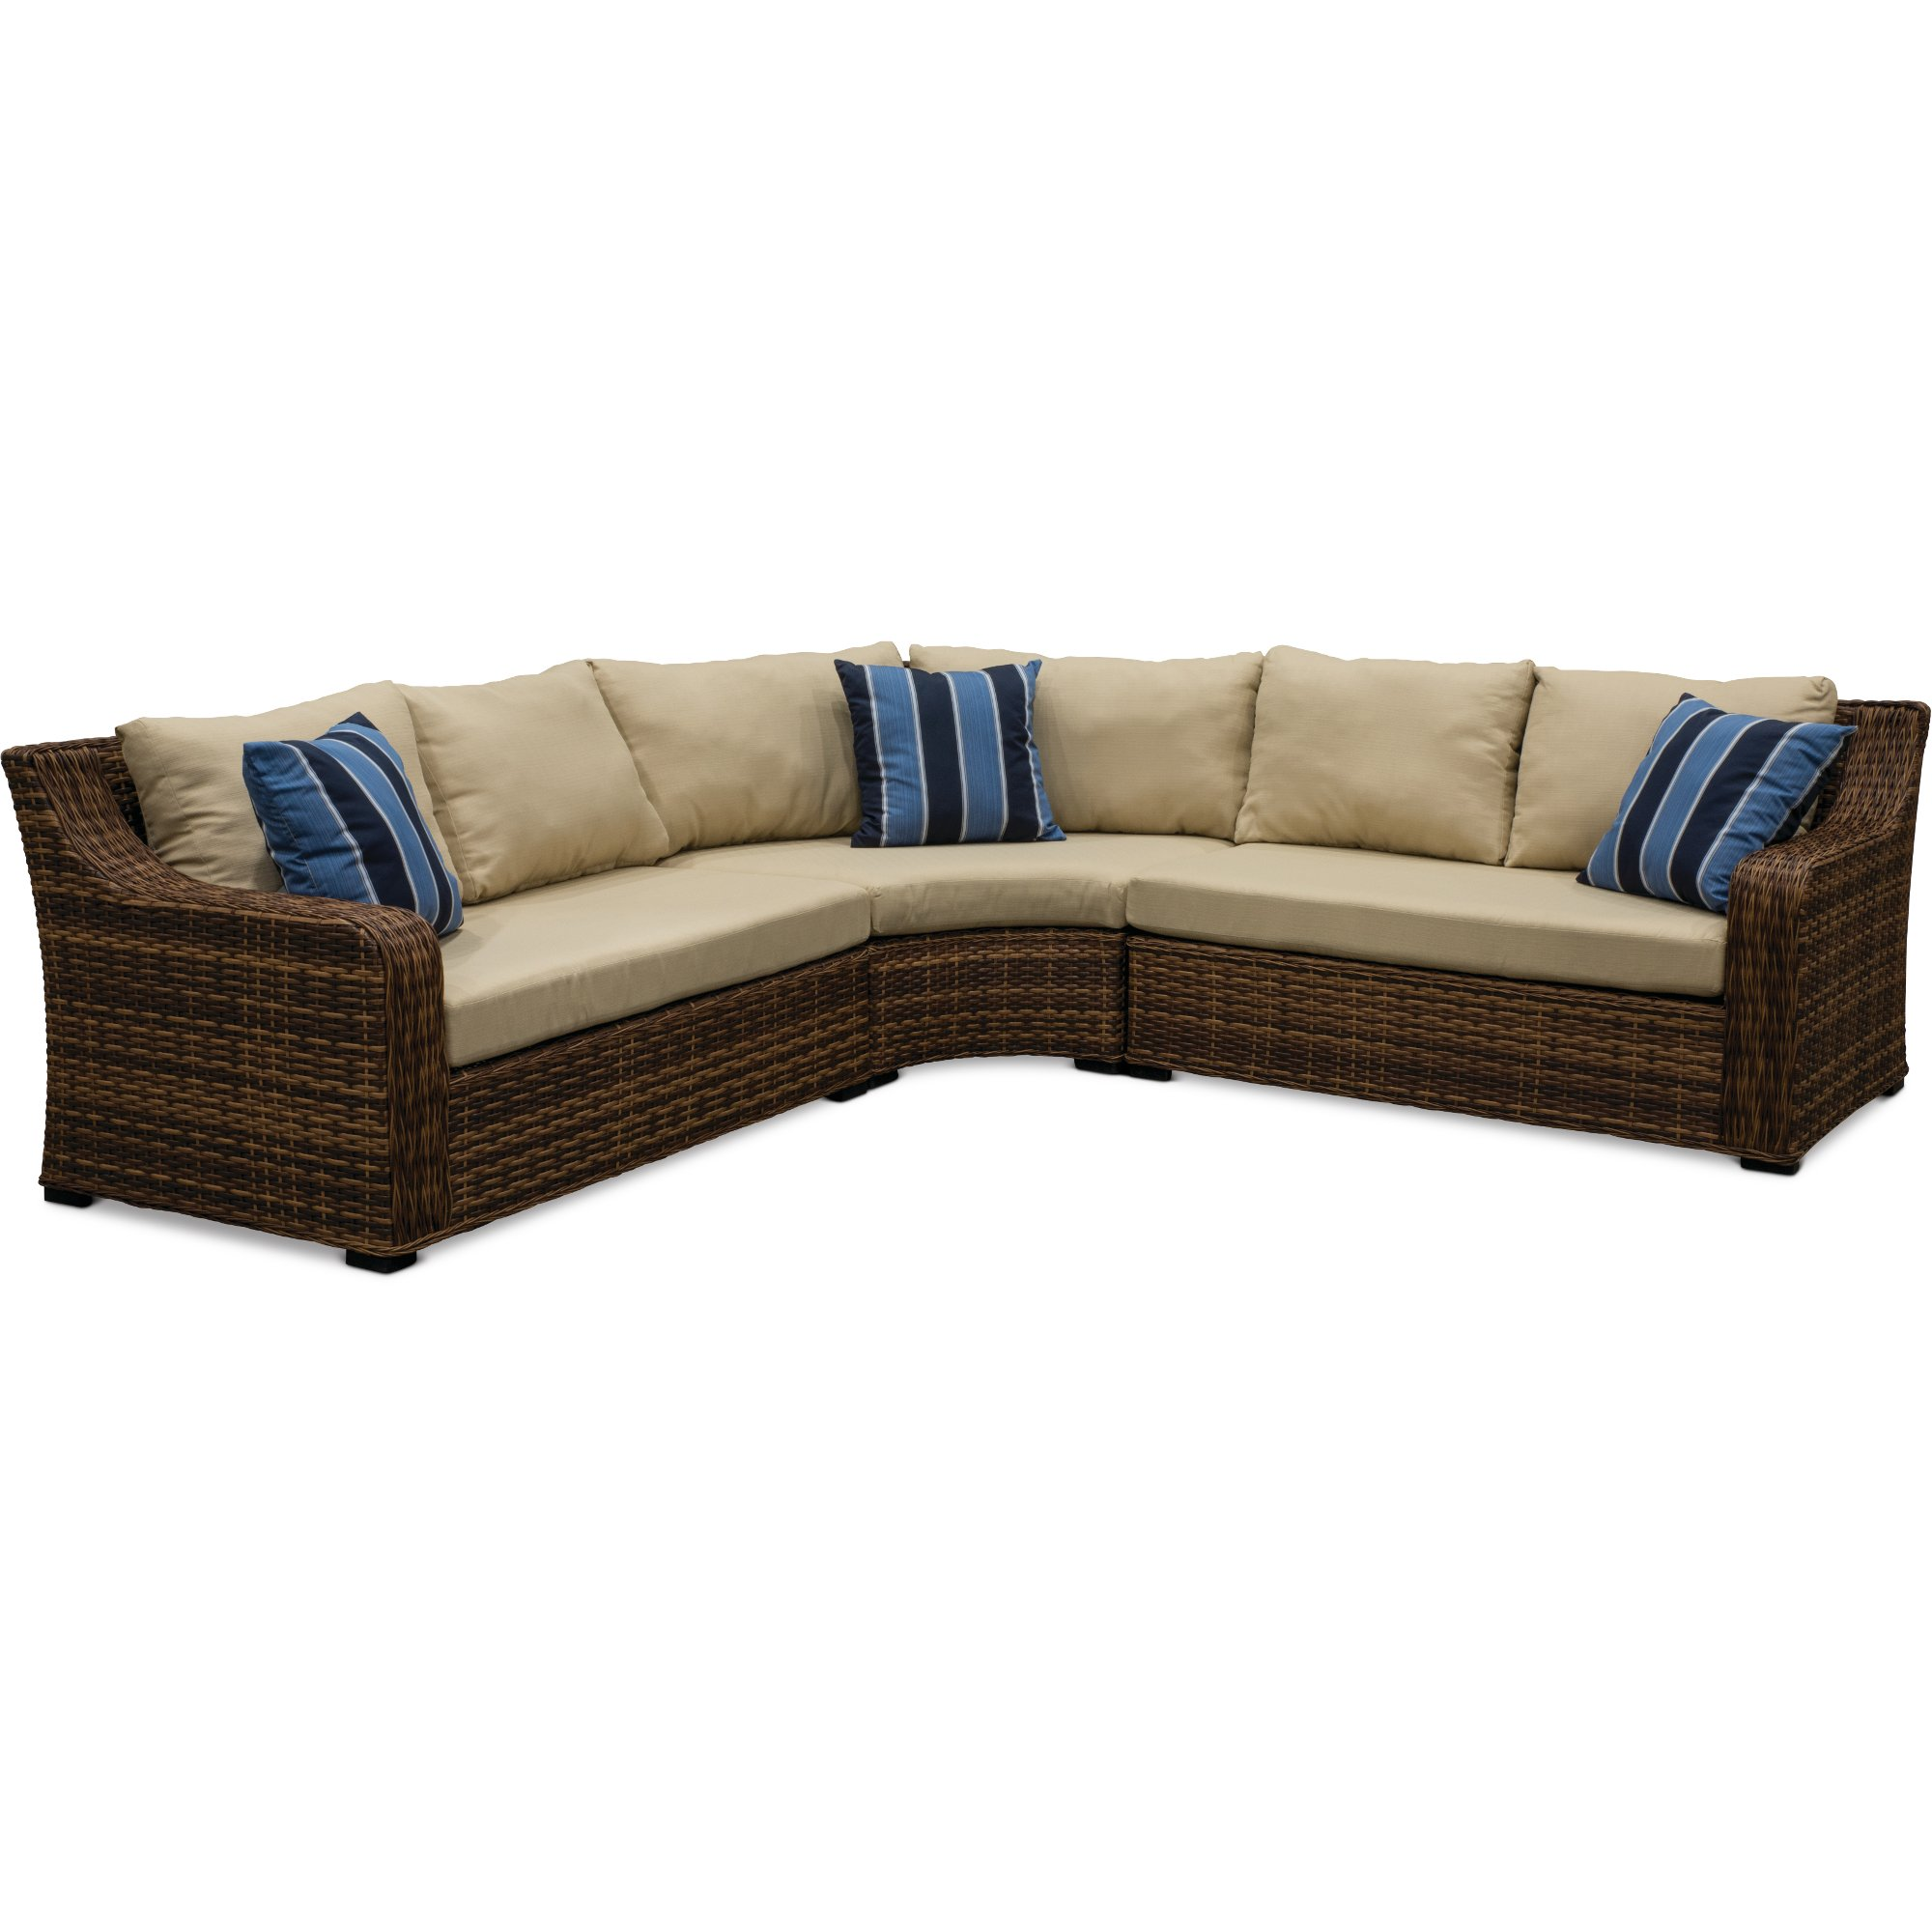 Wicker and Linen Outdoor Patio Sectional Sofa - Tortola